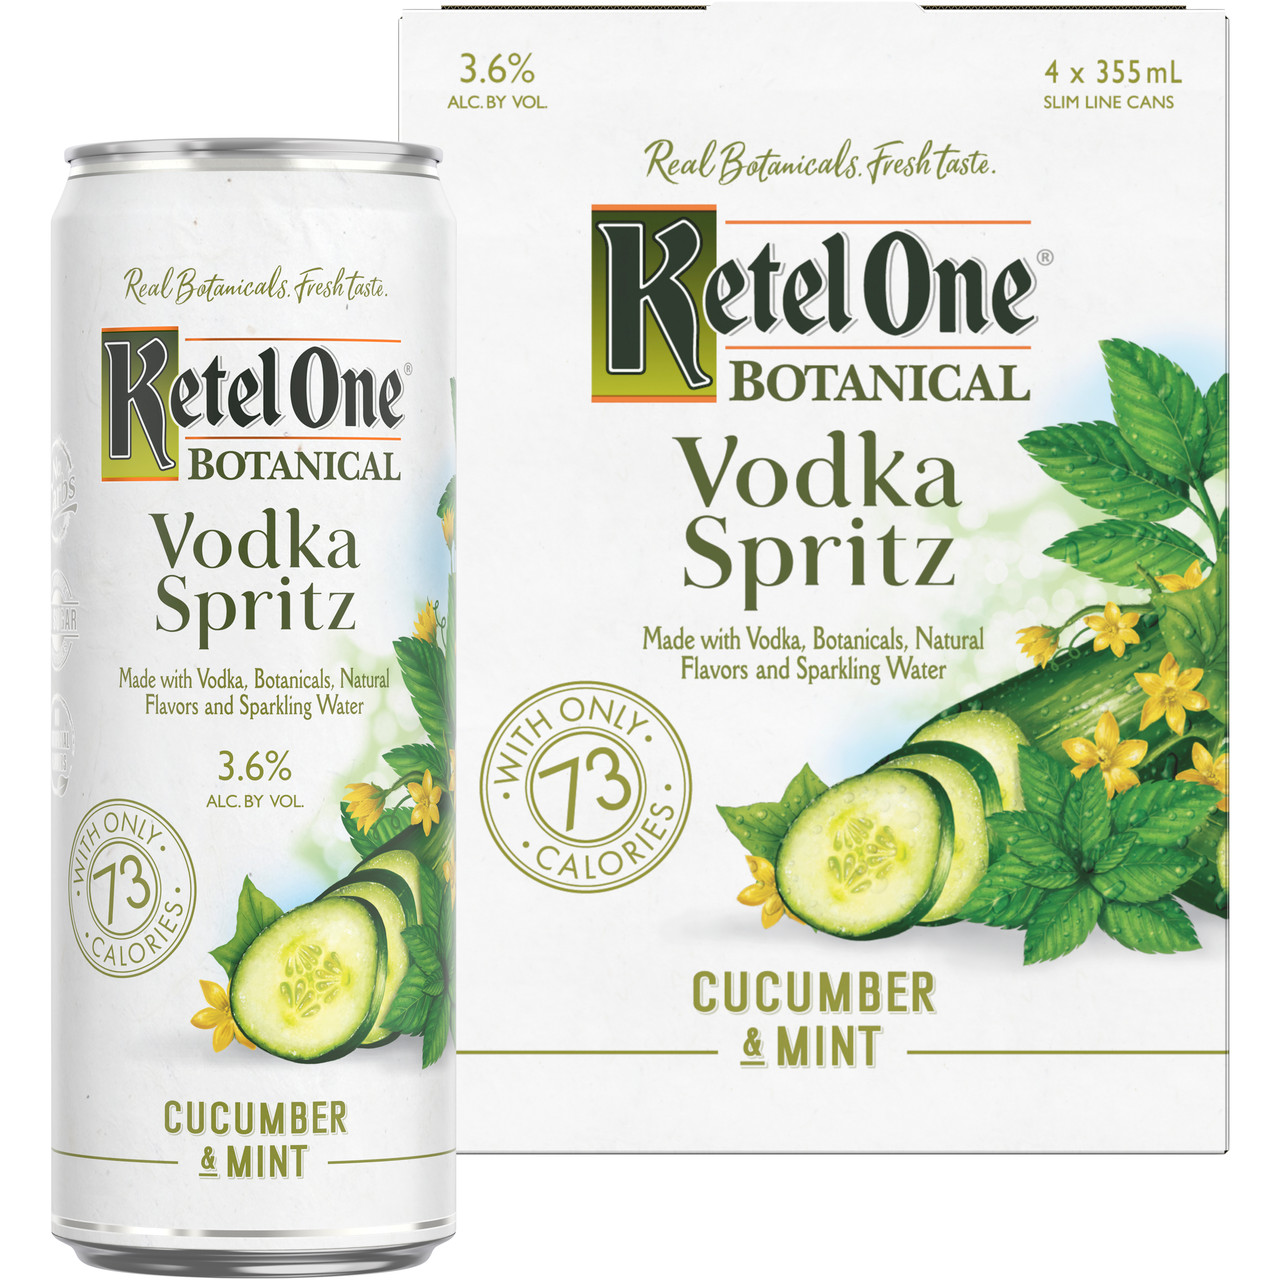 Artfully infused with real botanicals, natural fruit essence and sparkling water, Ketel One Botanical Vodka Spritz Cucumber & Mint offers an enticing new way to enjoy vodka. Made with exceptionally smooth, Non-GMO Ketel One Vodka and stored in a slim ready-to-enjoy can, this drink features the crisp taste of sliced cucumber with a hint of refreshing mint. Ketel One Botanical Vodka Spritz Cucumber & Mint is gluten-free and contains no artificial sweeteners, added sugars or artificial colors. Includes one 7.2 proof 12 fl oz can of Ketel One Botanical Vodka Spritz Cucumber & Mint.